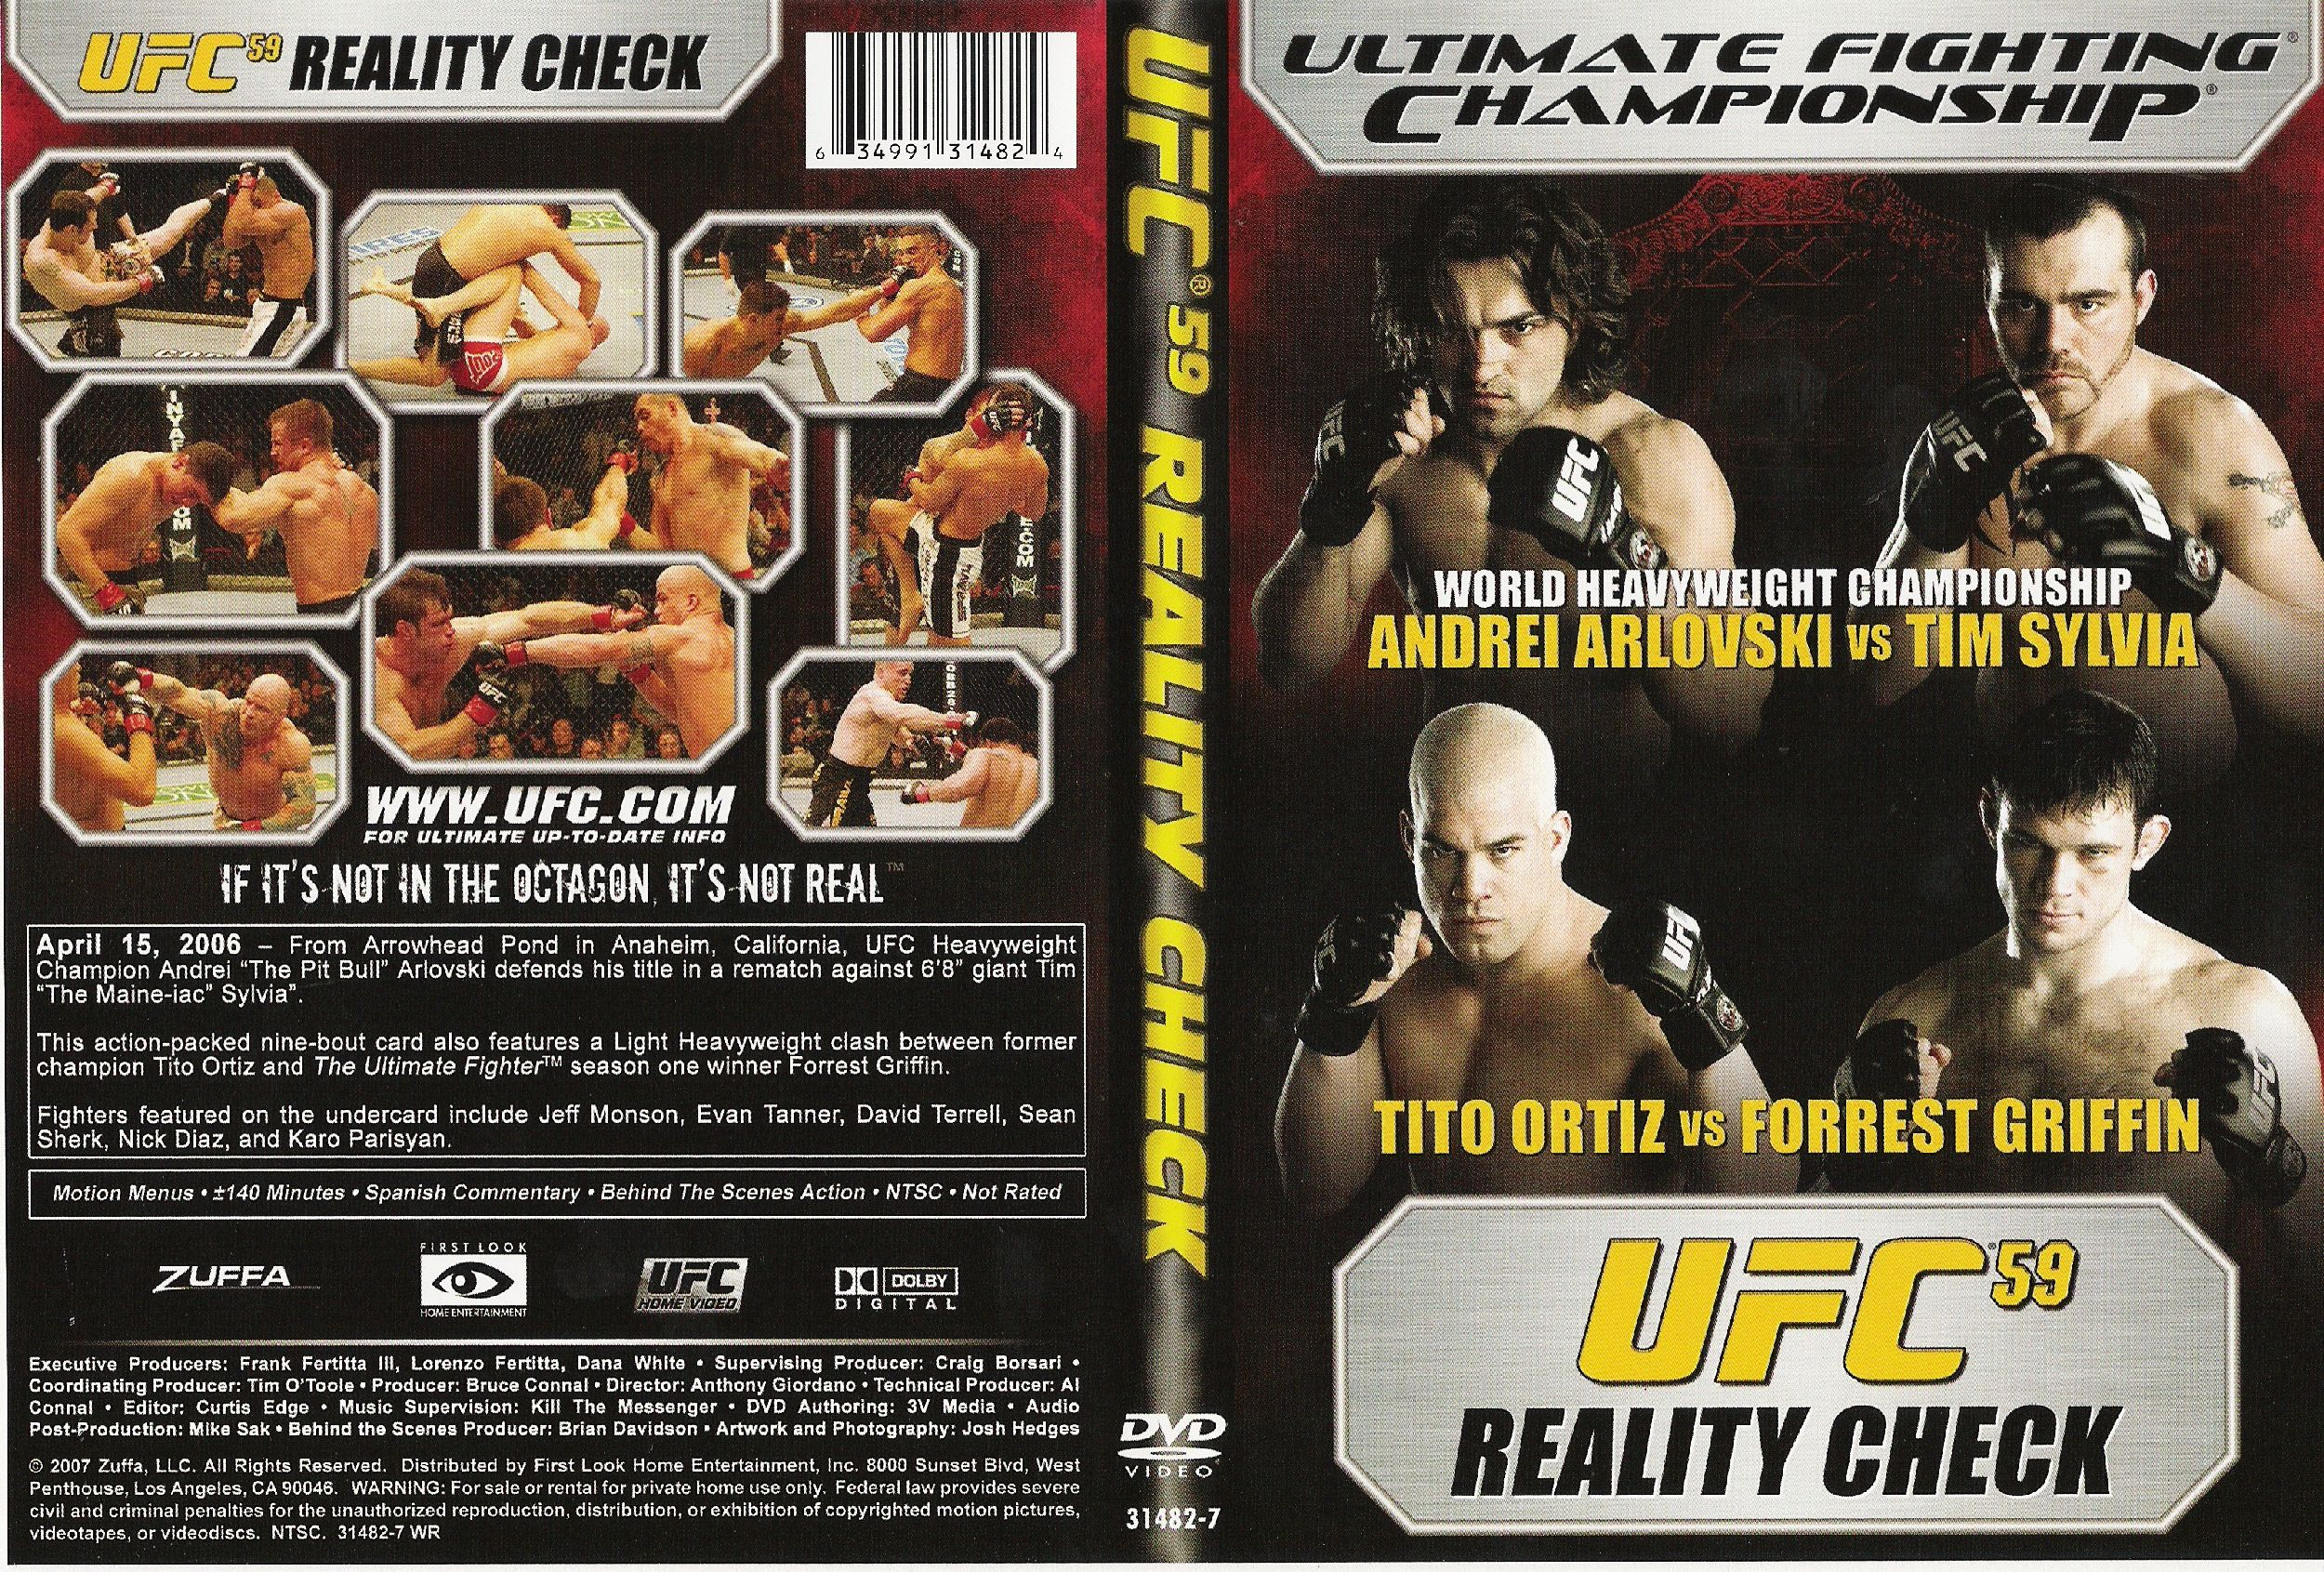 Ufc_59_Reality_Check_R1-[cdcovers_cc]-front